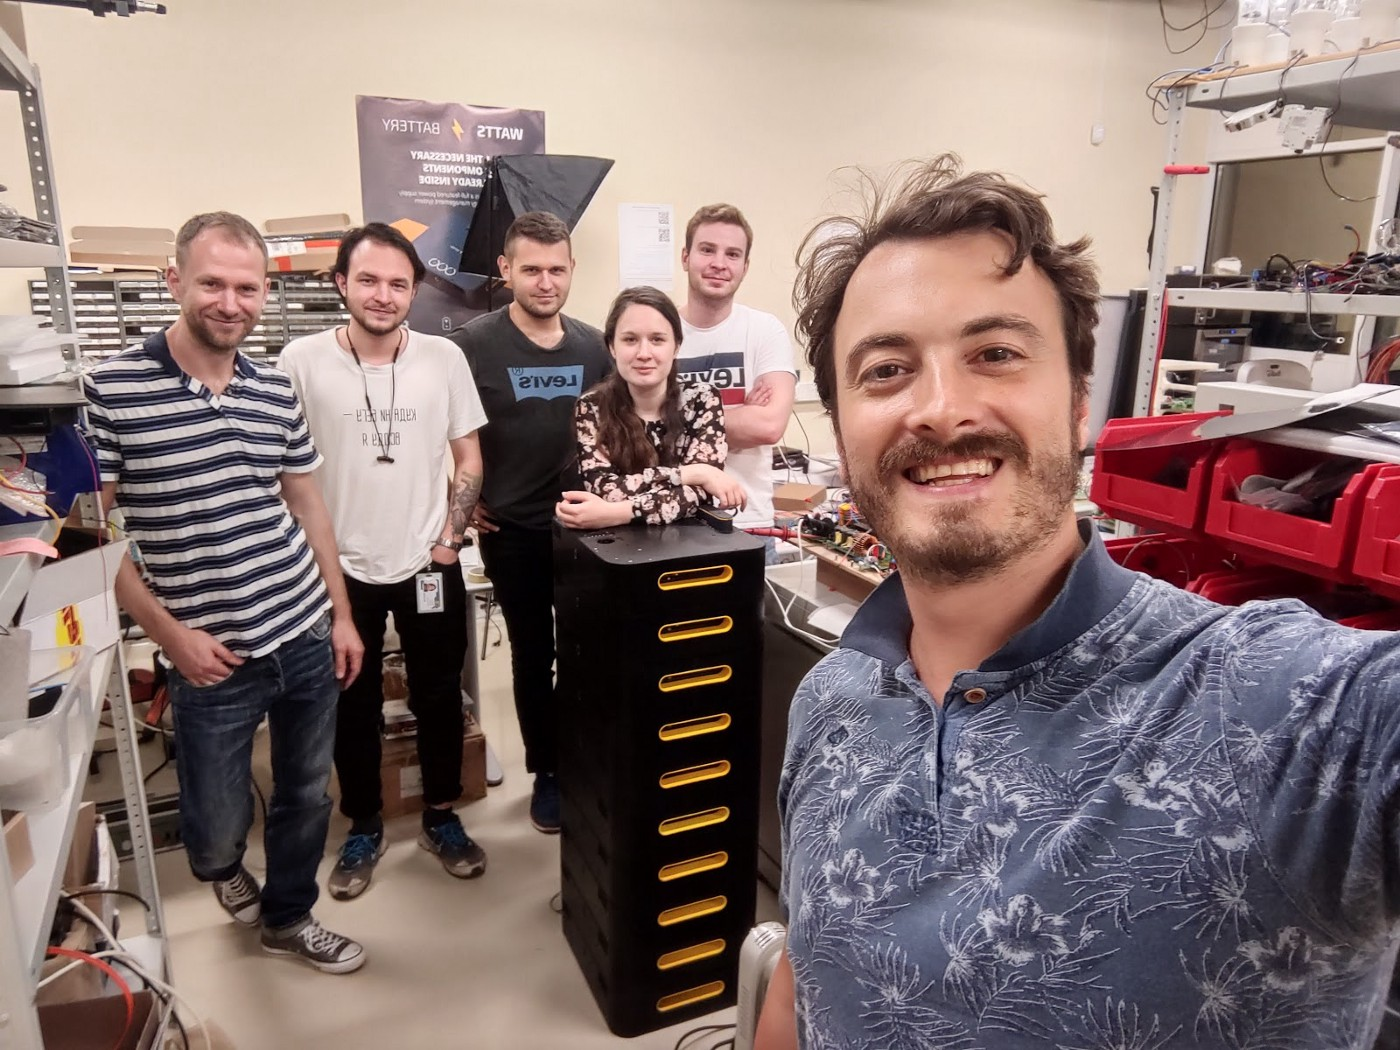 WATTS Battery After 4 Years: Our Team and Mission